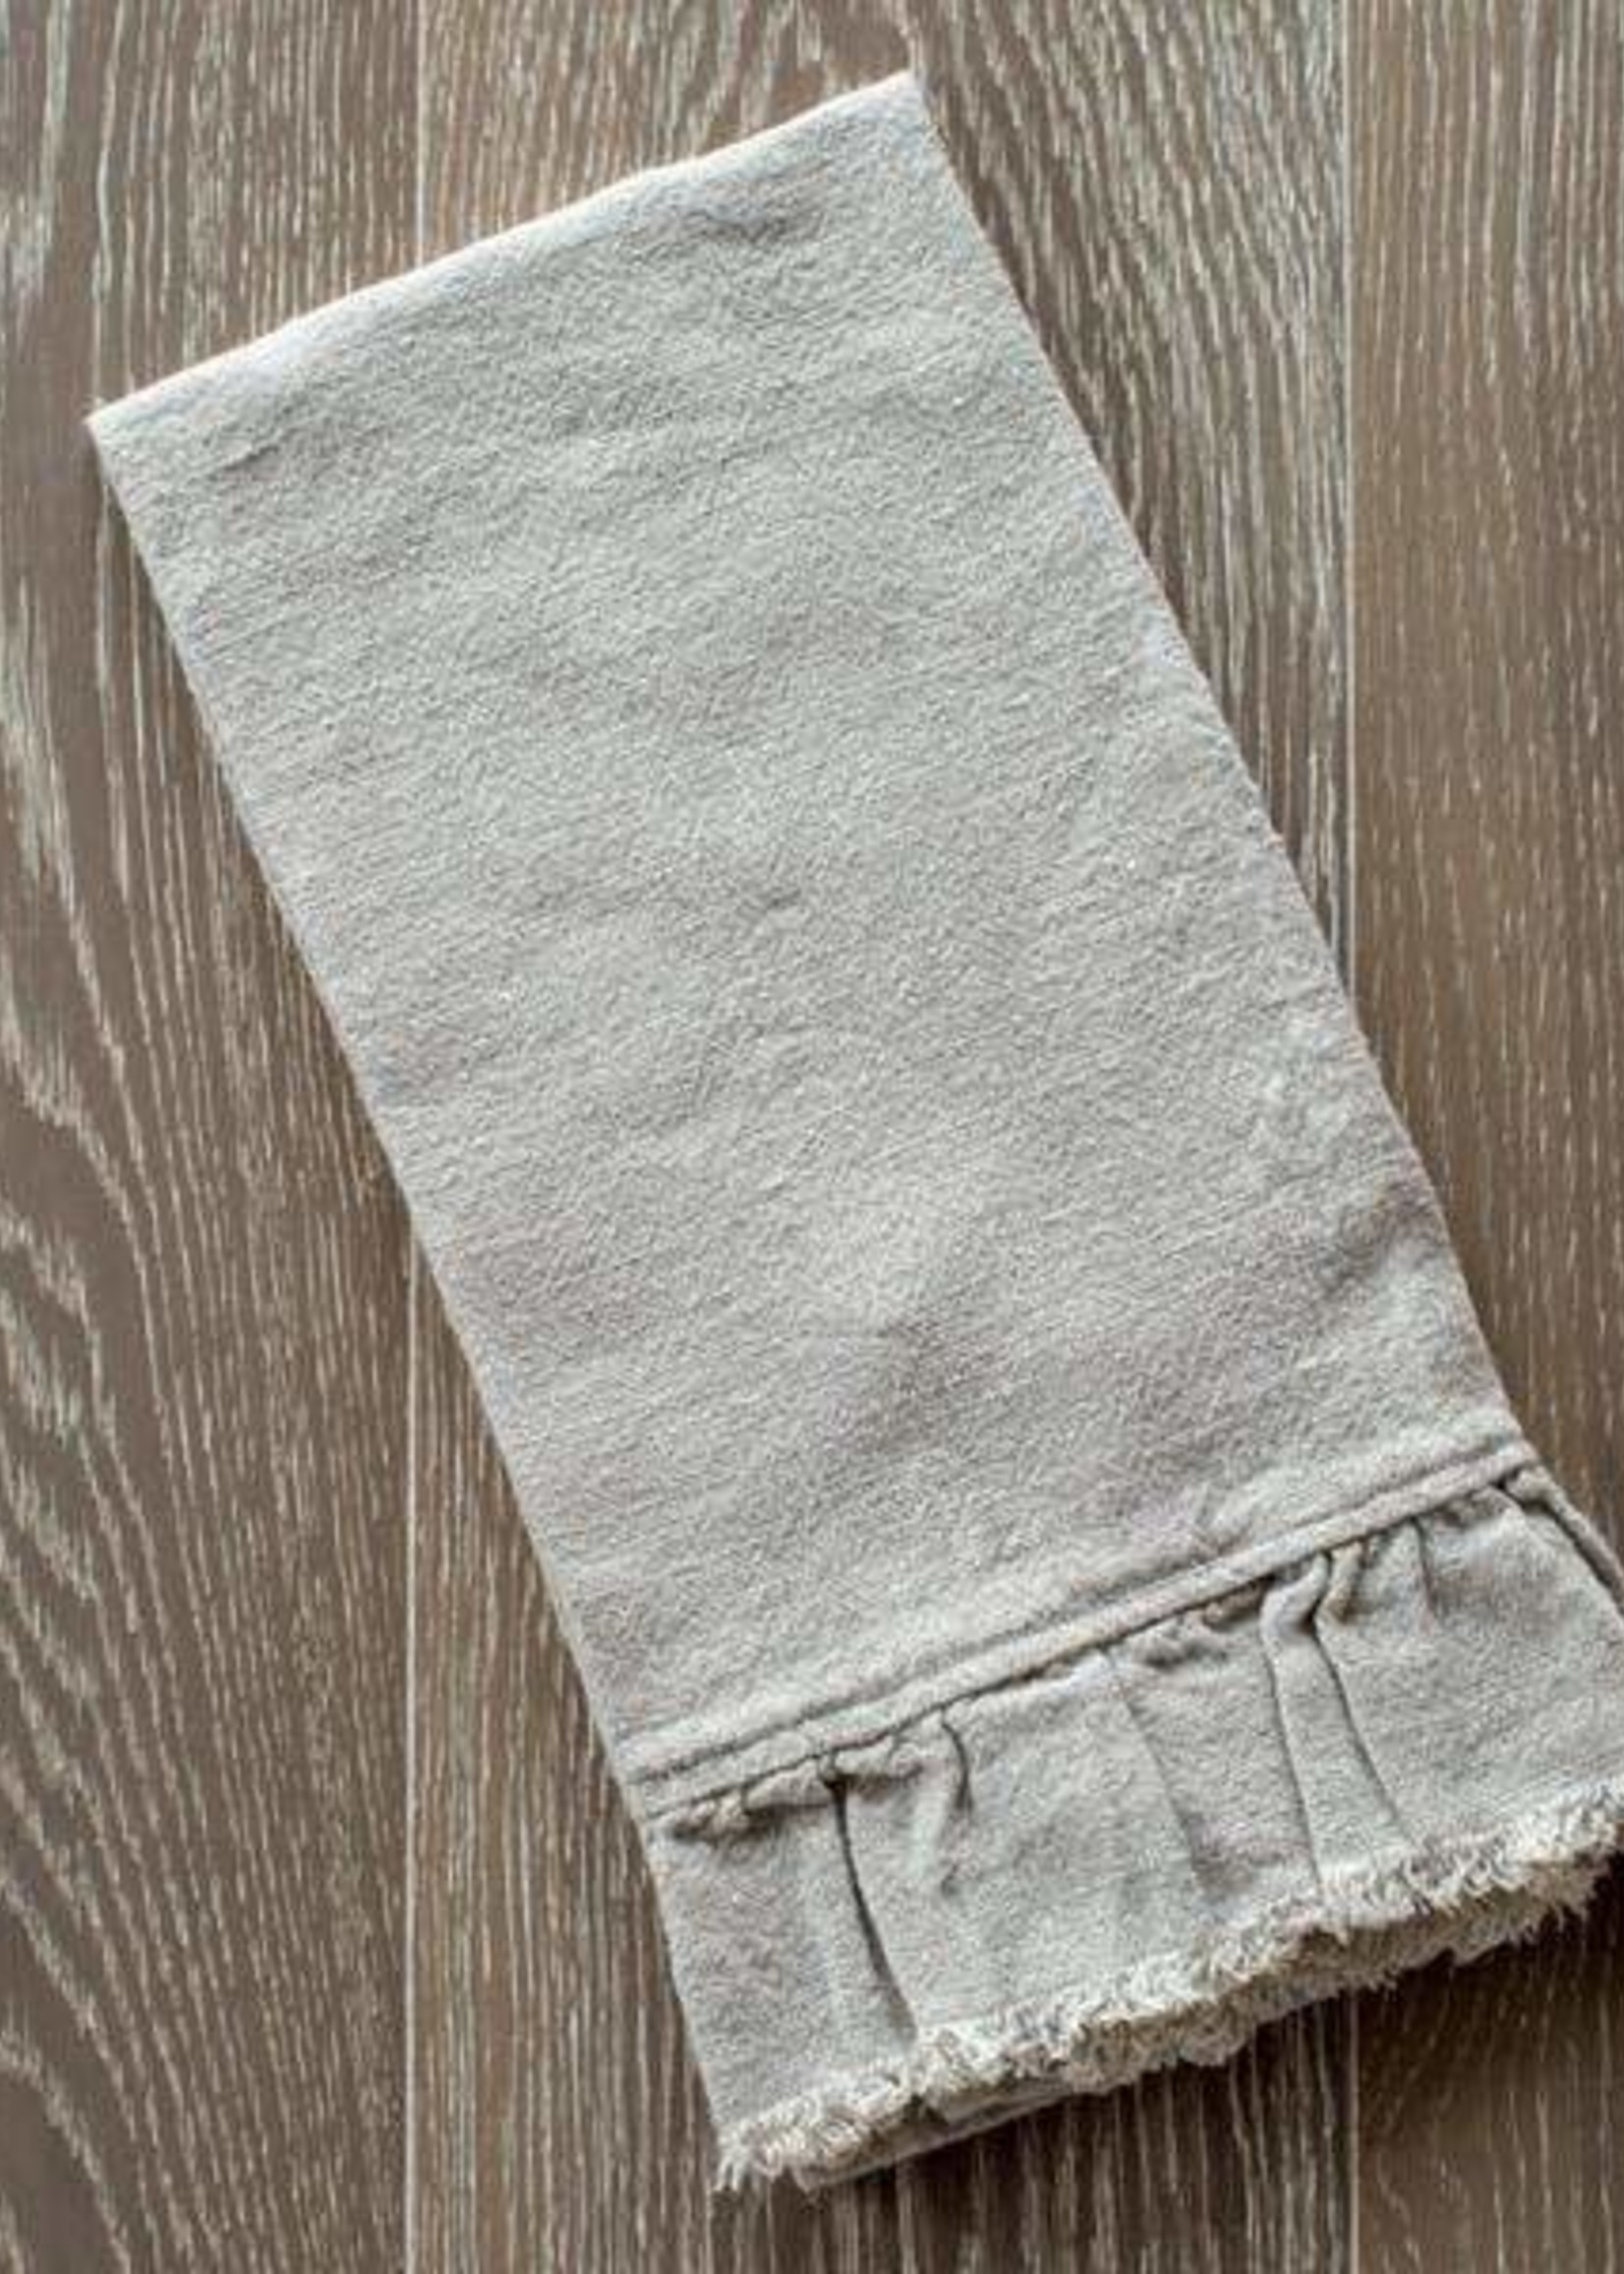 Crown Linen Designs Provence Ruffle and Fringe Towel - Natural